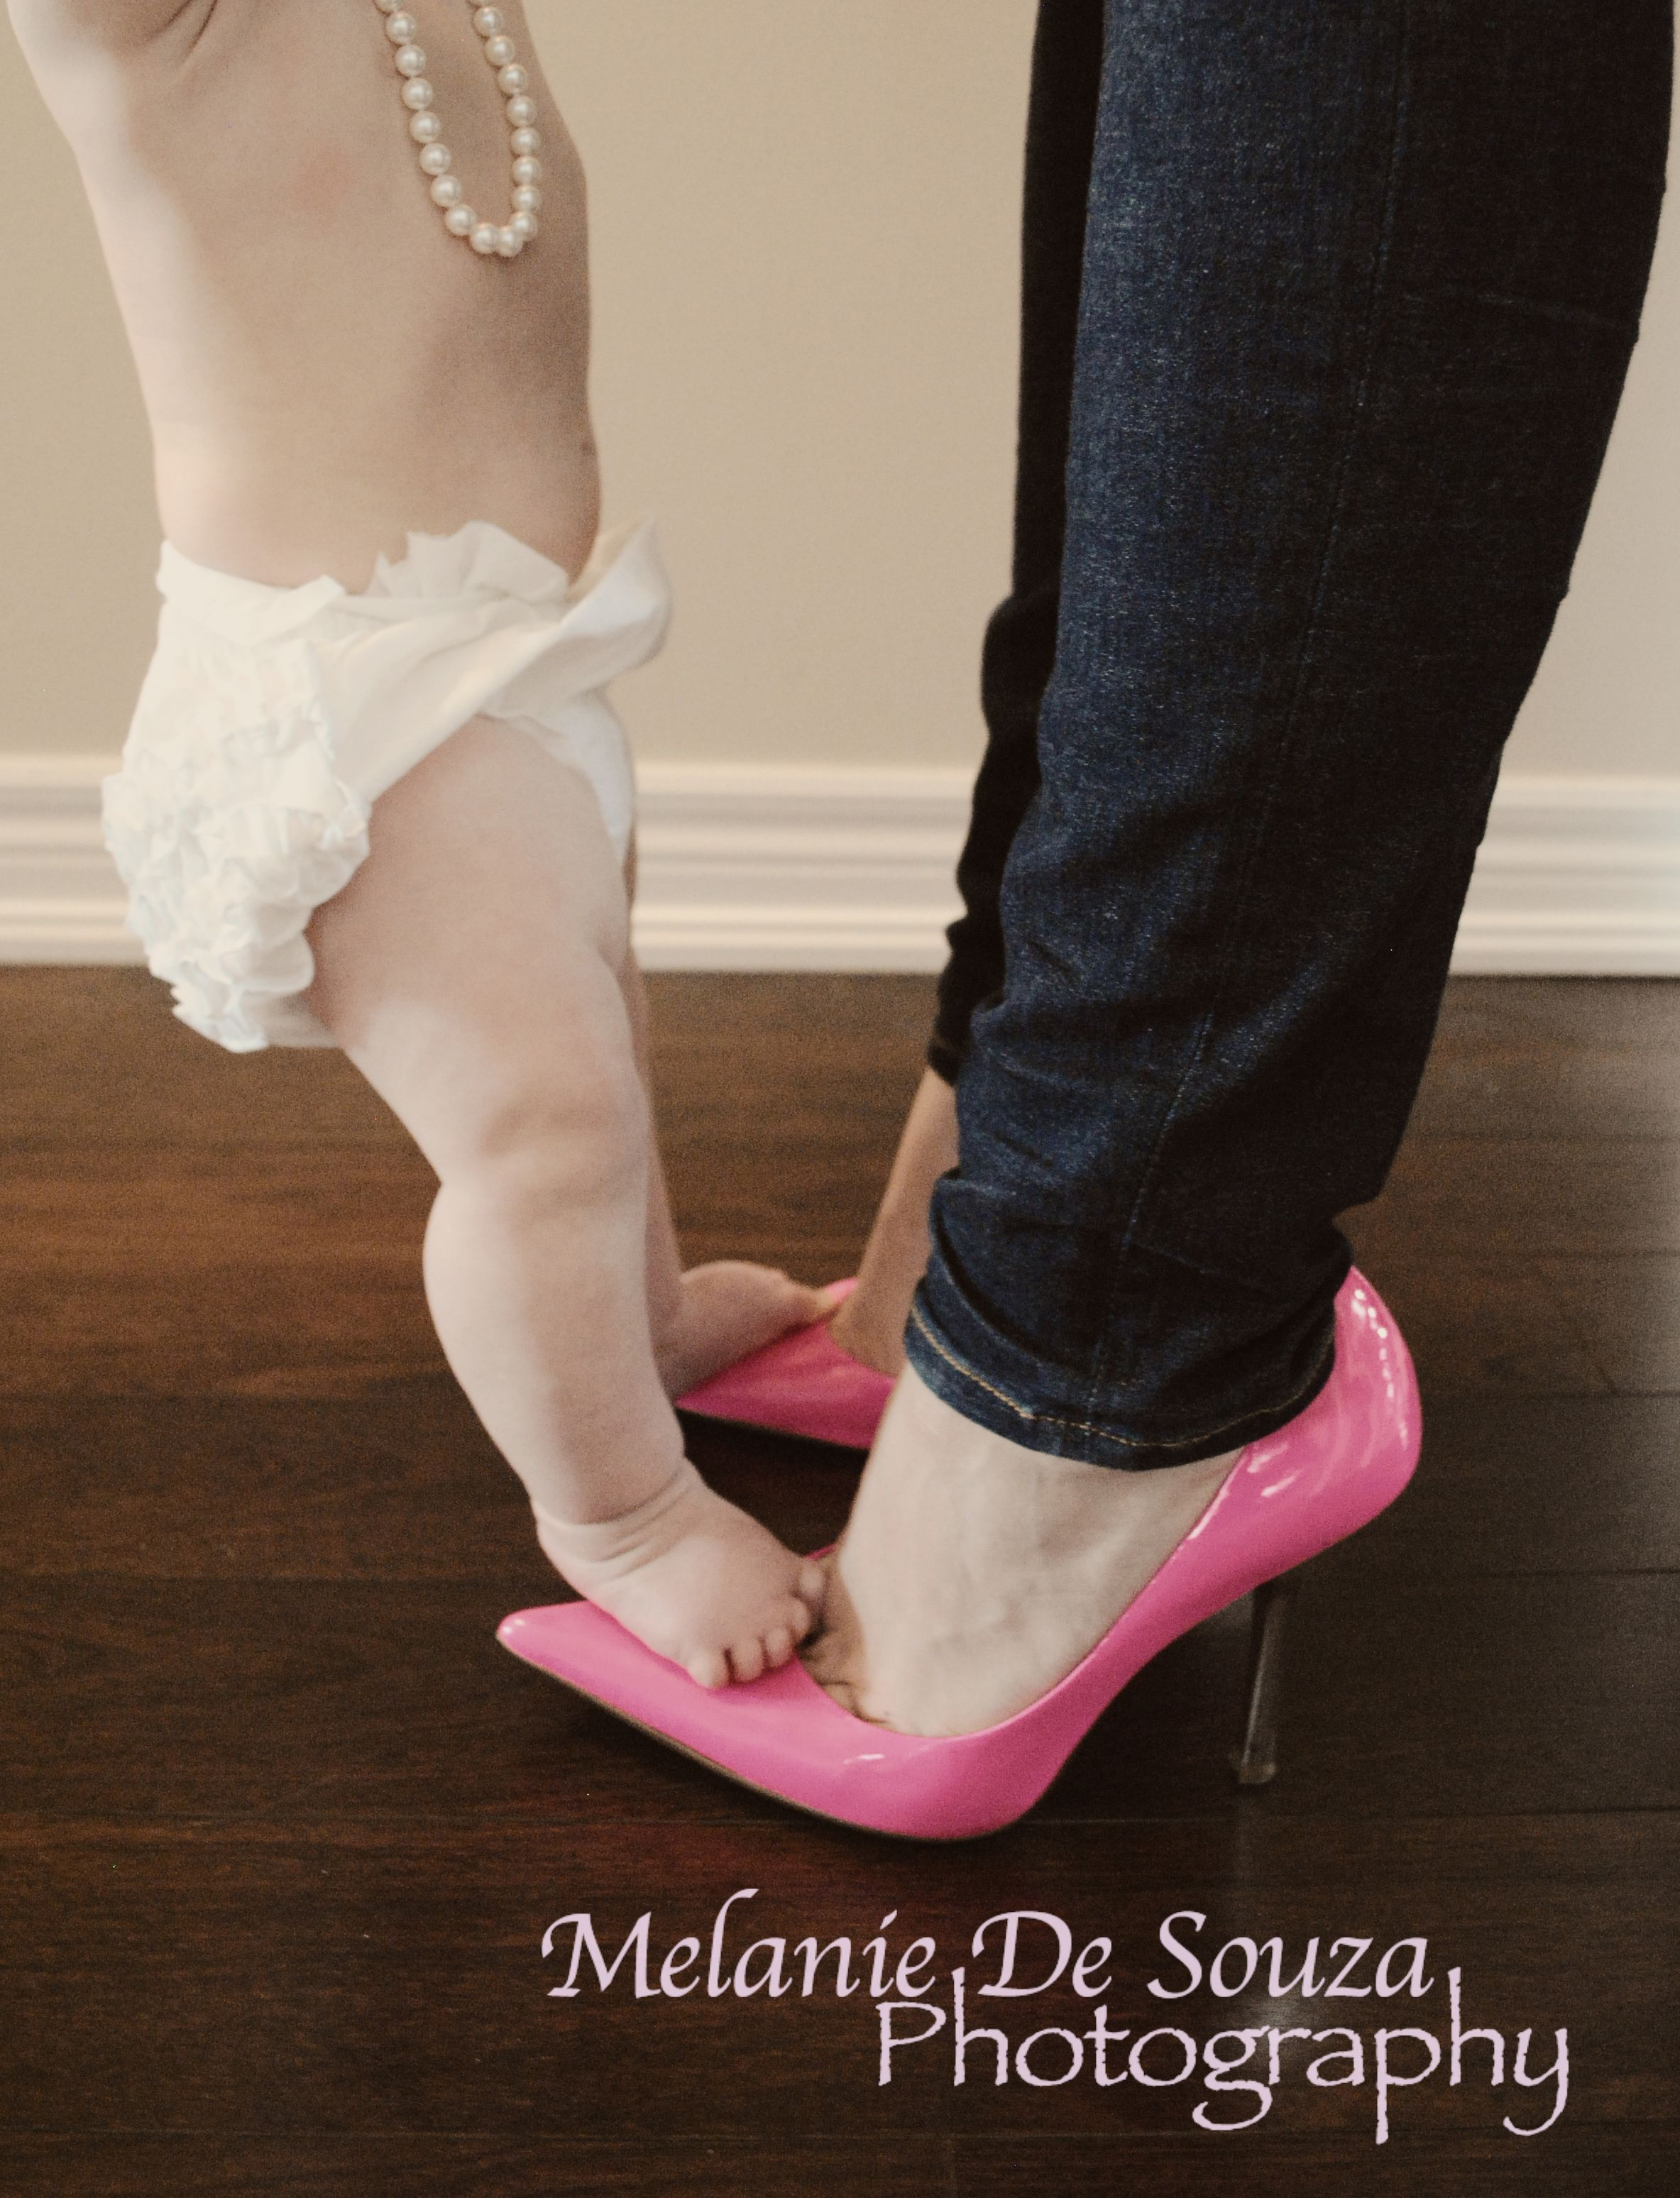 Melanie de souza photography month photo ideas mommy and me photo